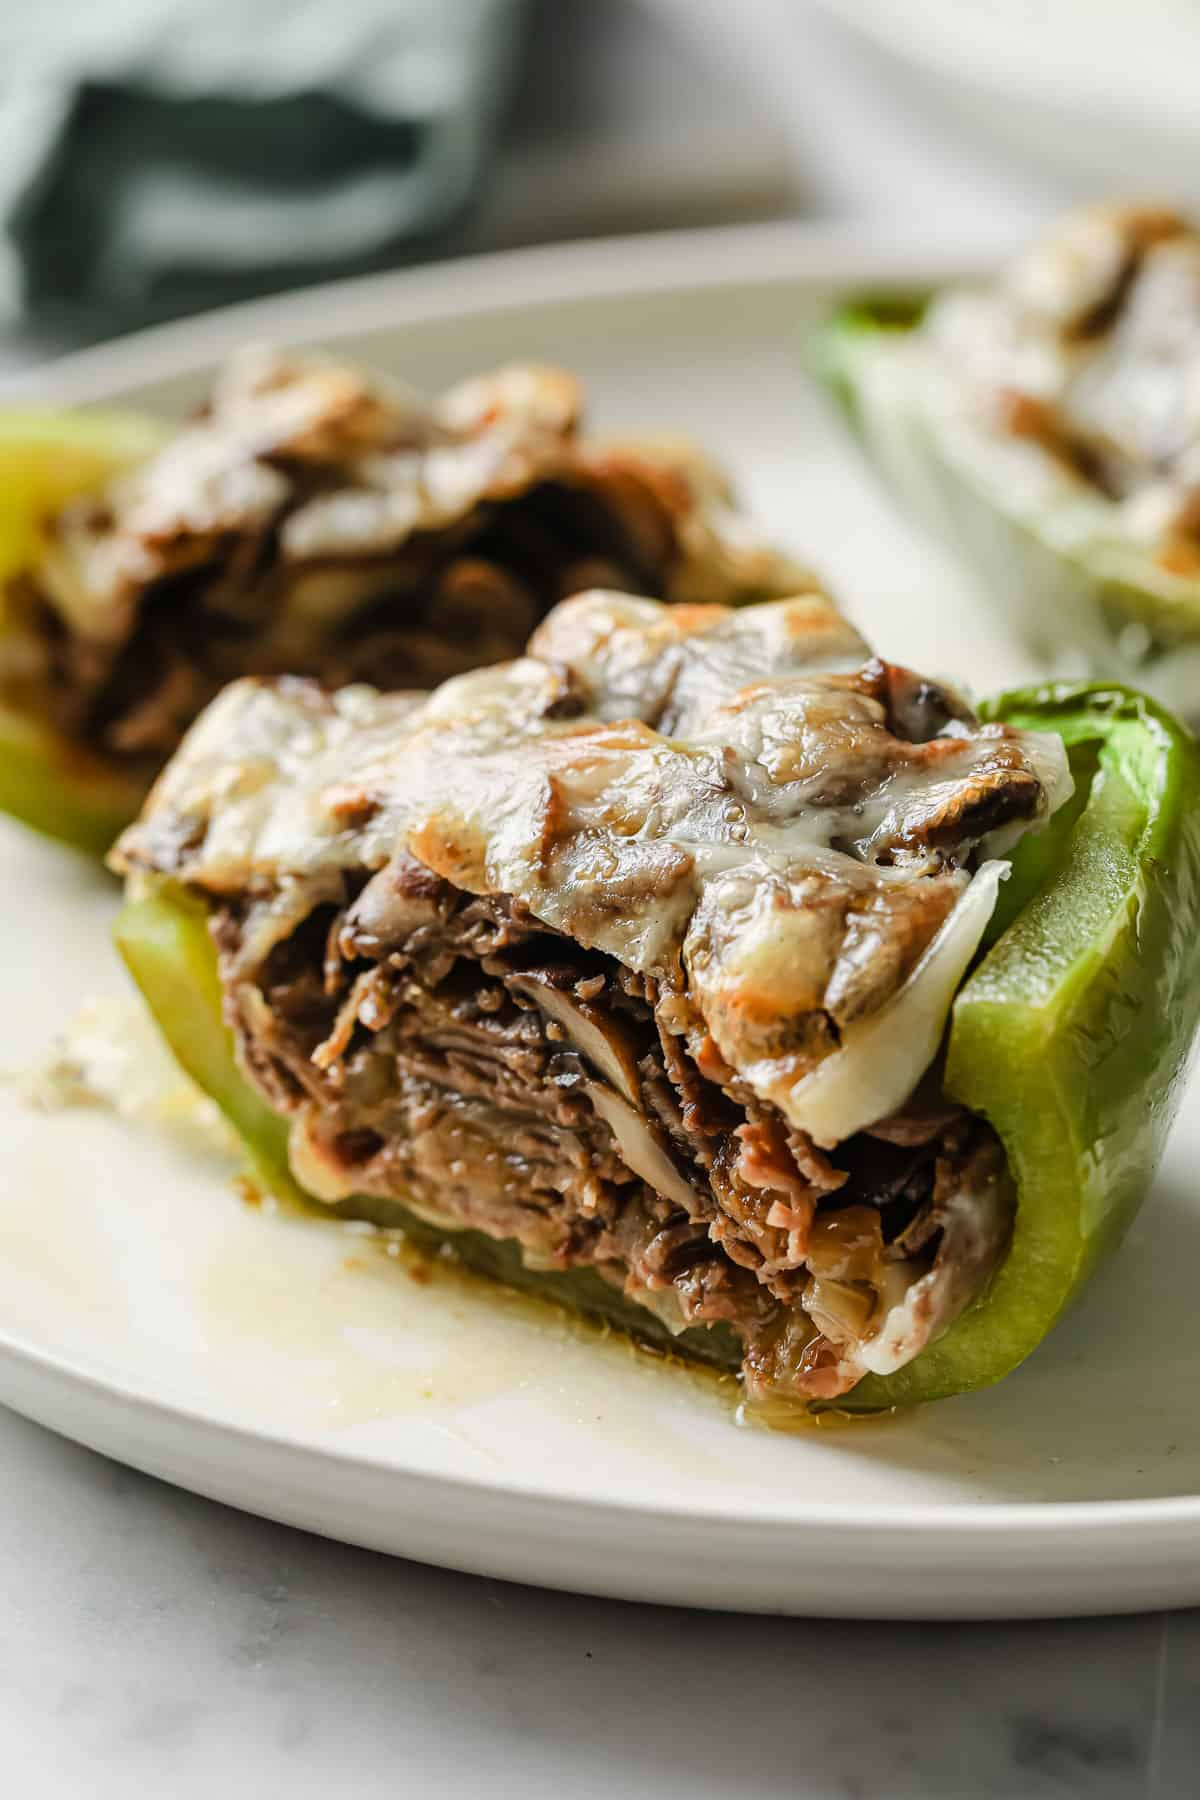 green bell peppers stuffed with roast beef, provolone cheese, mushrooms, onions, and garlic